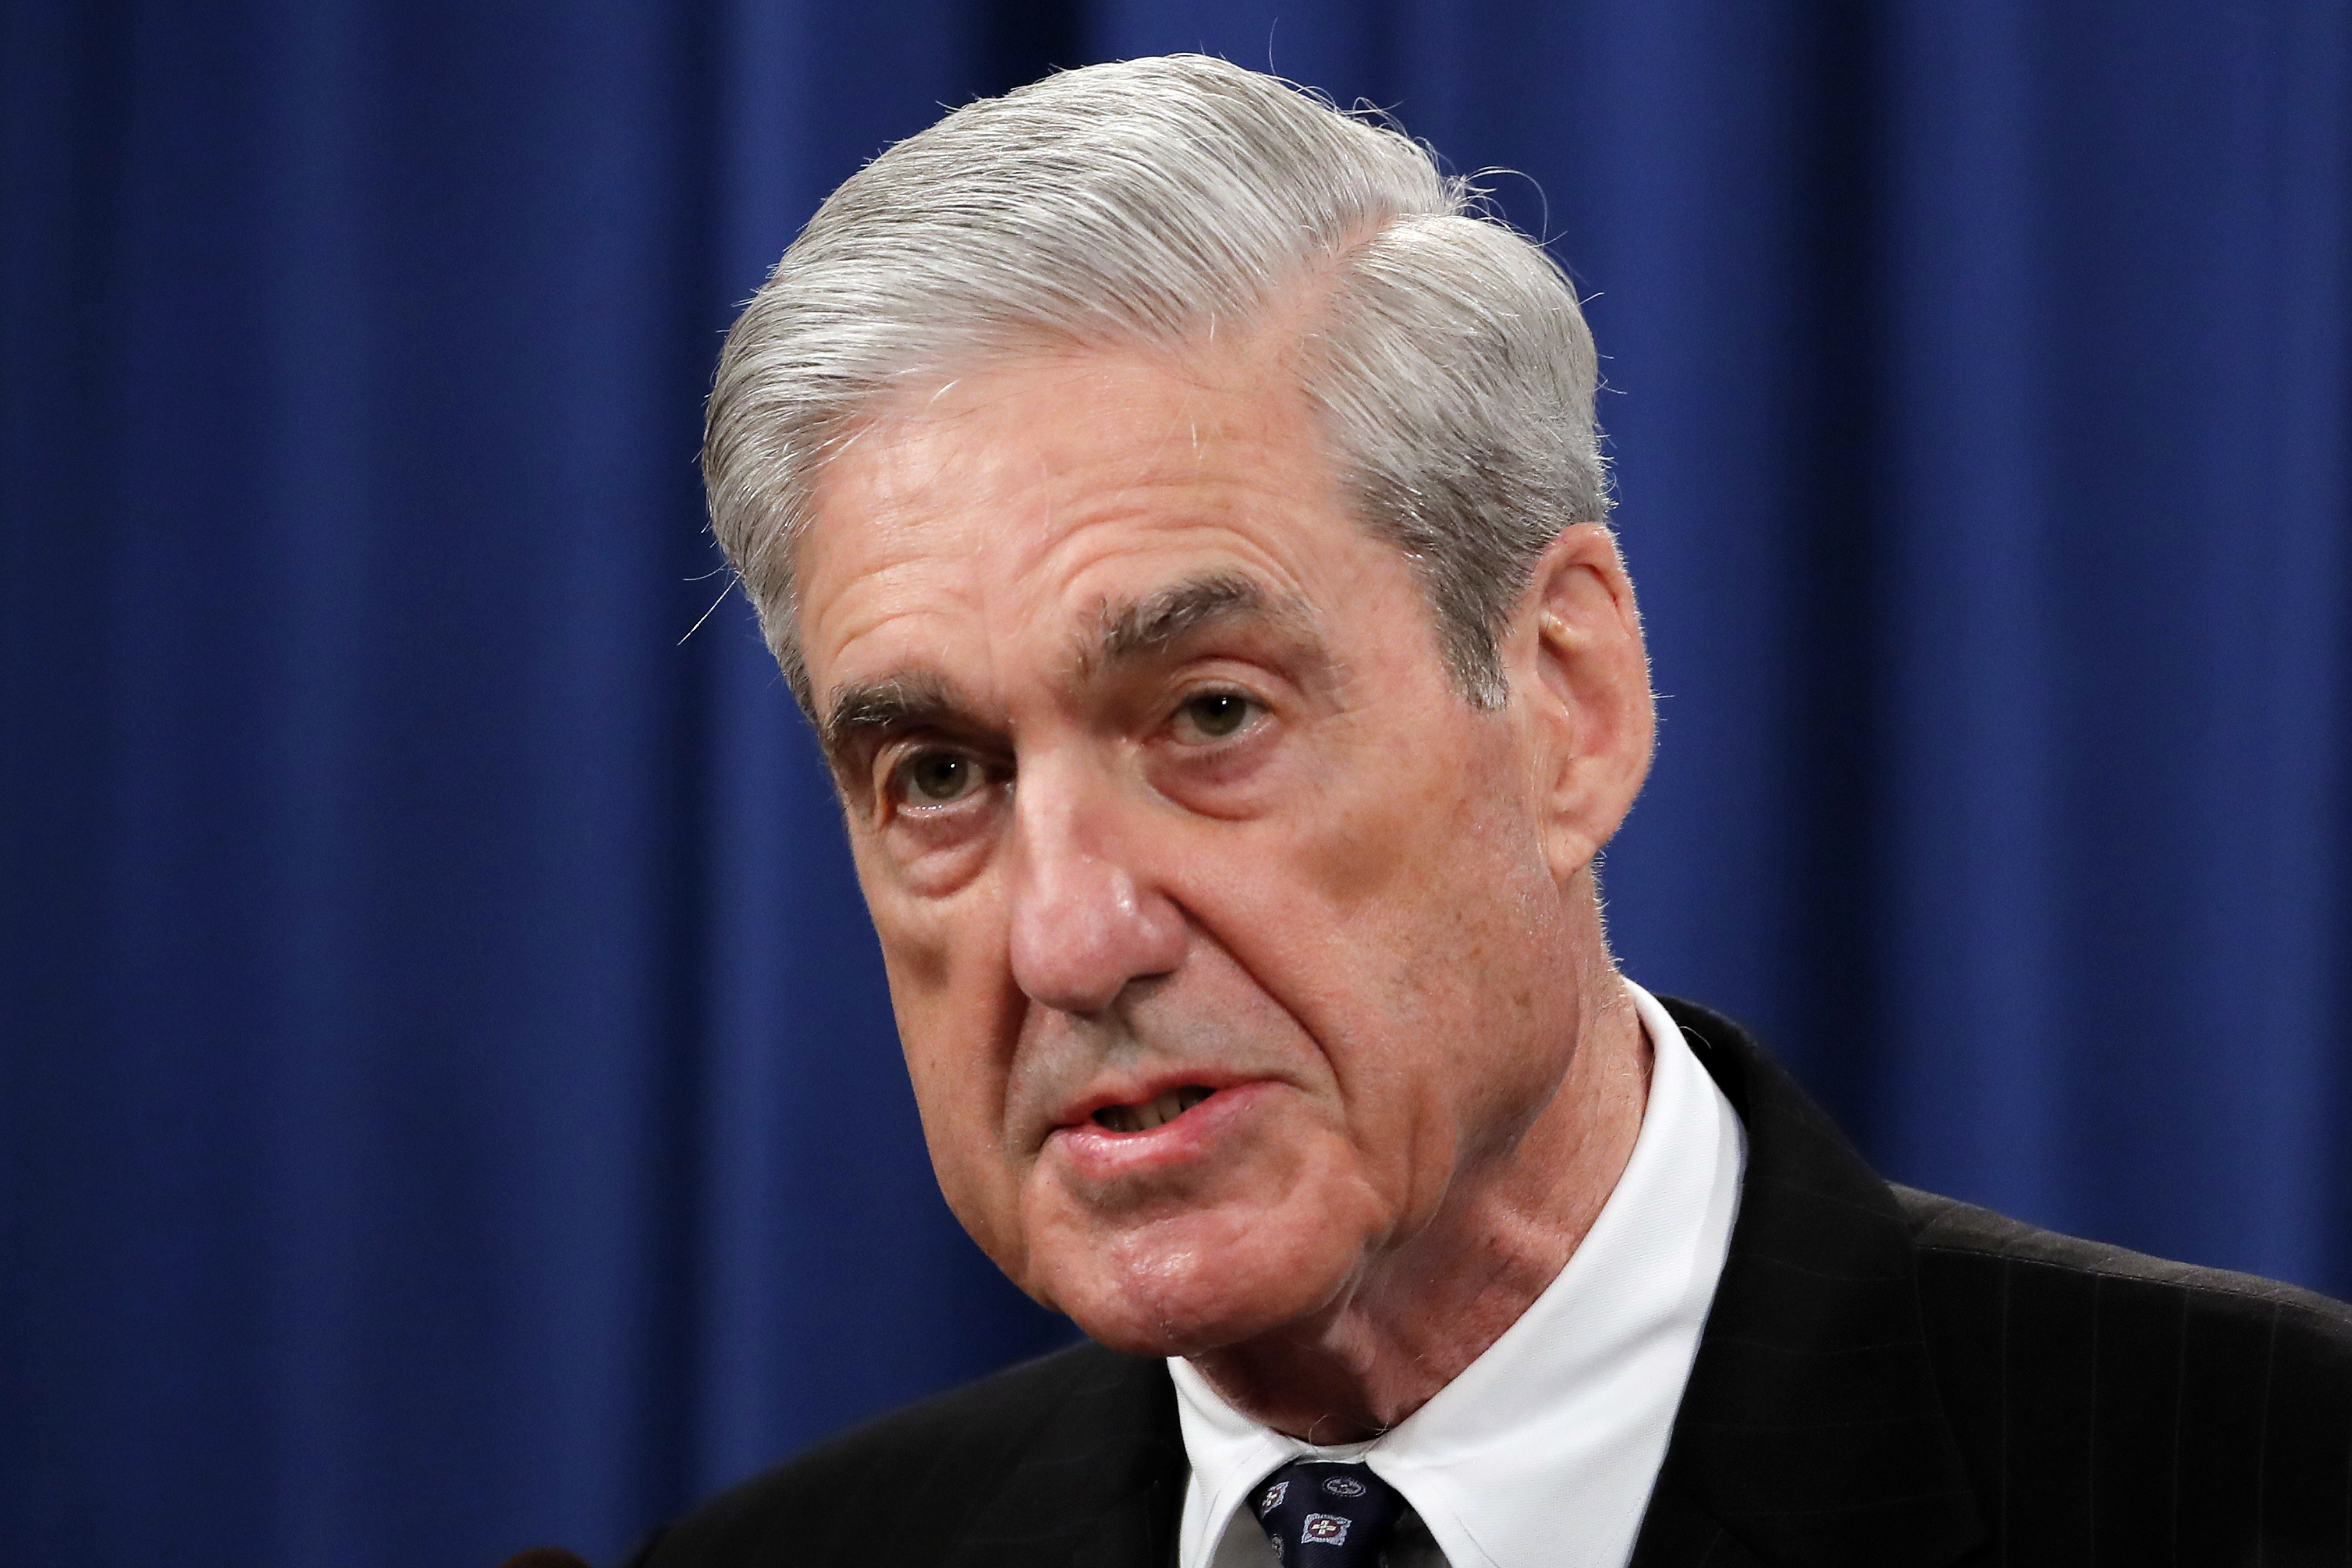 Former Special Counsel Robert Mueller and the FBI gained access to Trump transition team records during their Russia investigation, Senate Republicans said.